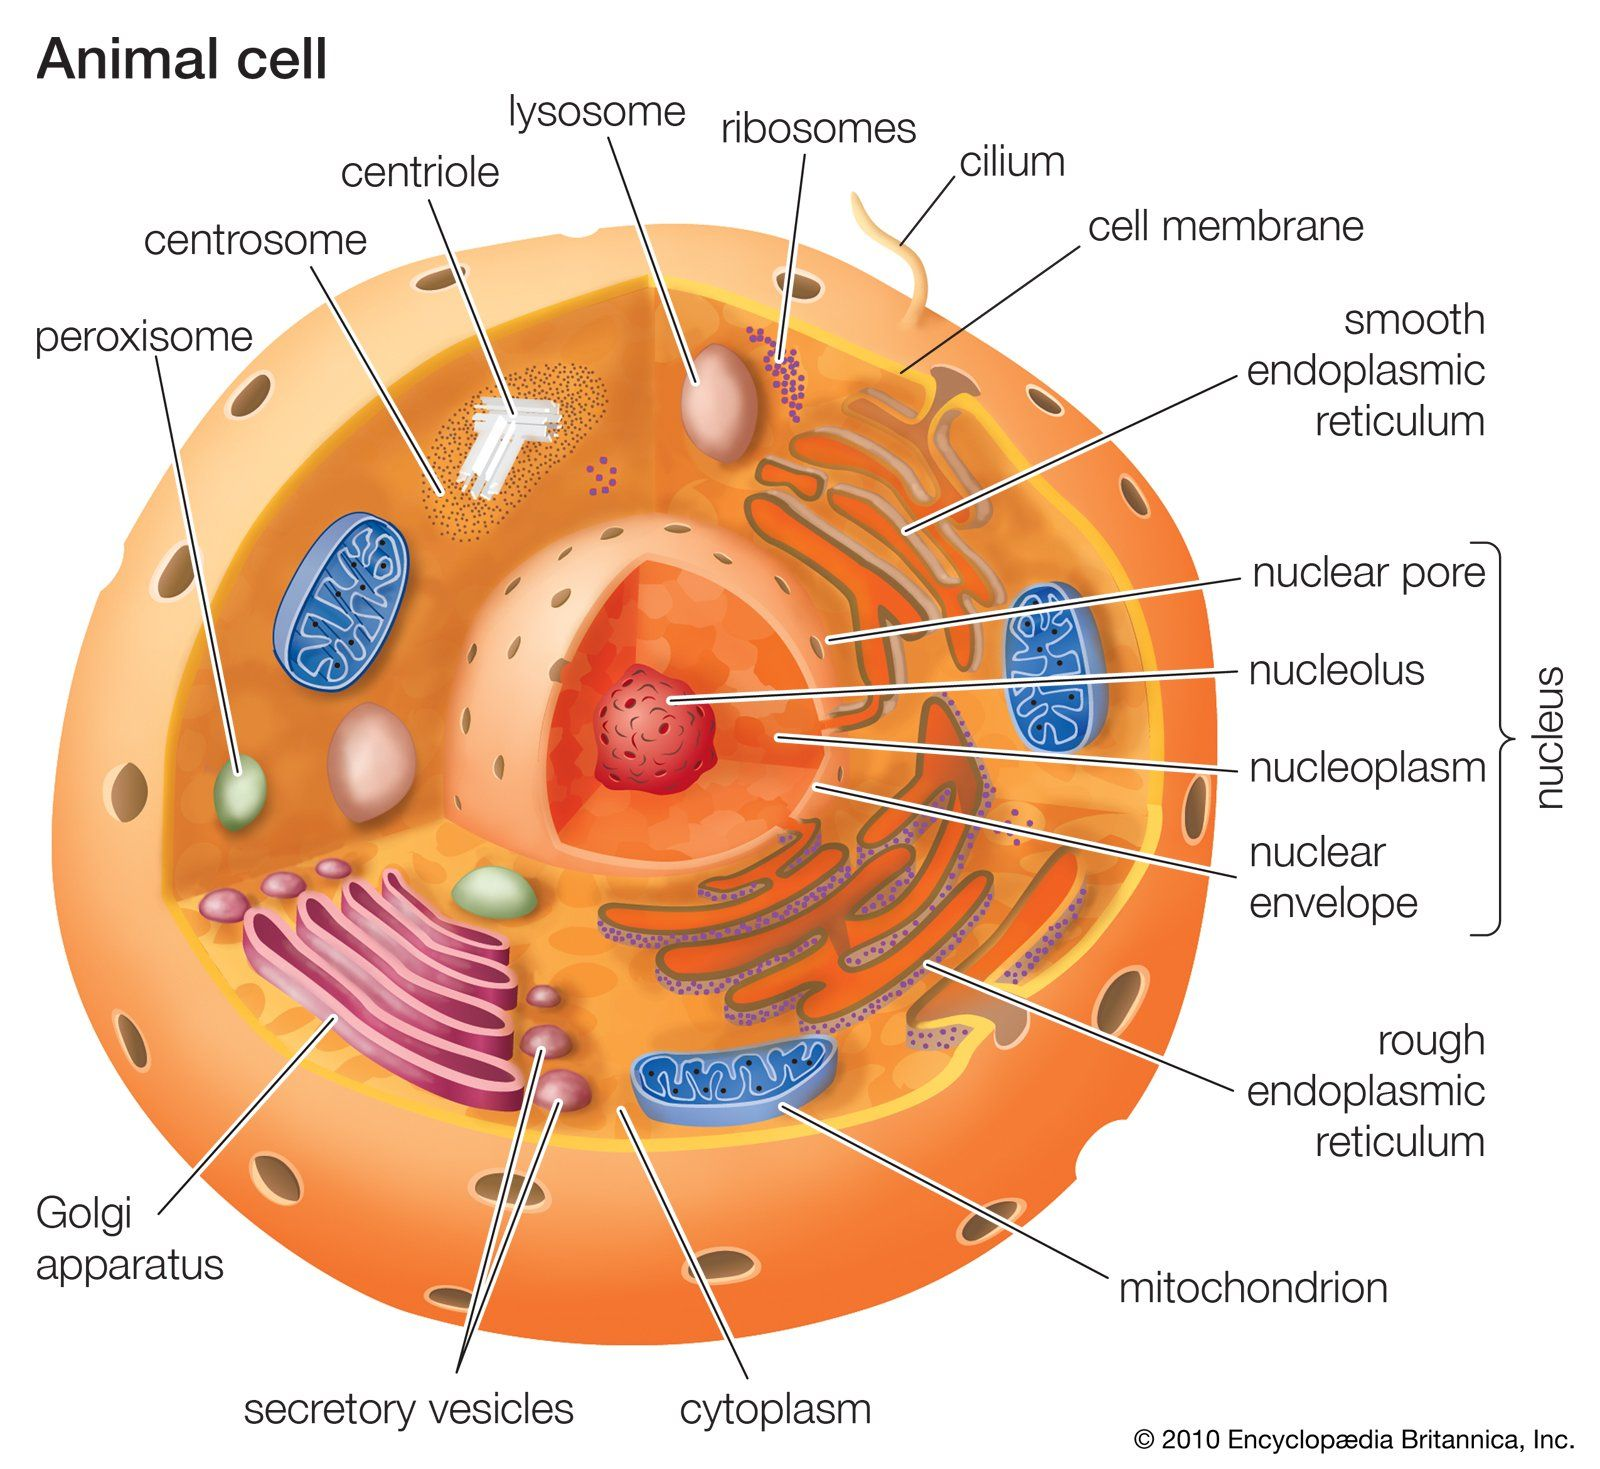 Pin by Kay Cam on Biology digrams | Pinterest | Cell model, Cell ...